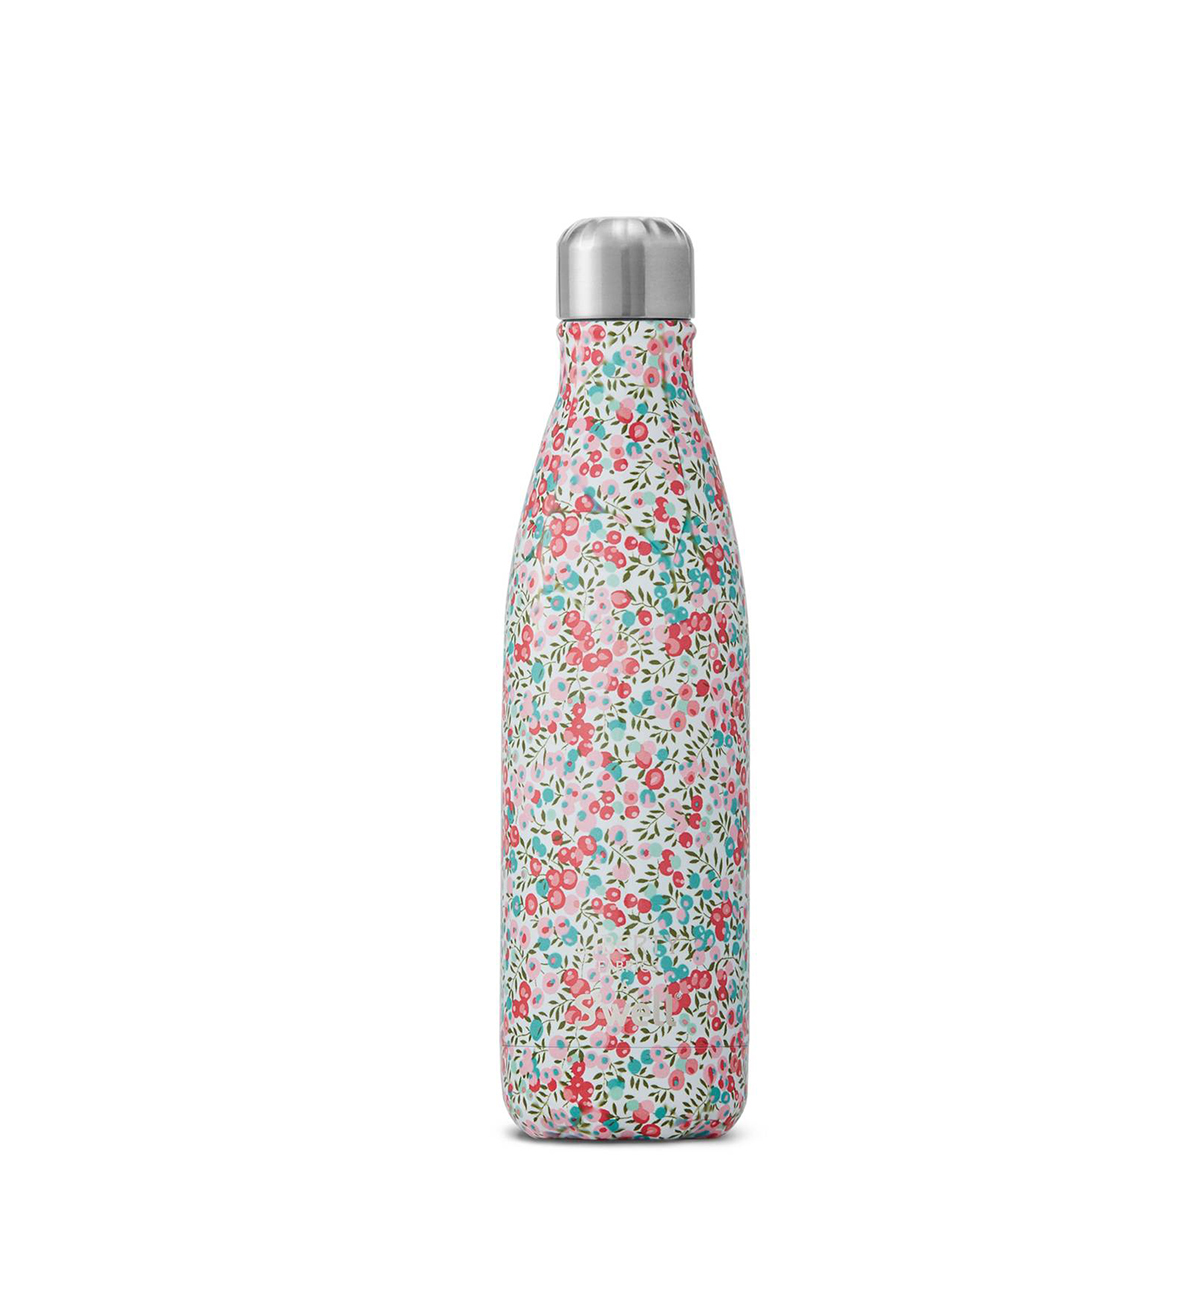 Best water bottles, Liberty Fabrics Wiltshire Stainless Steel Water Bottle